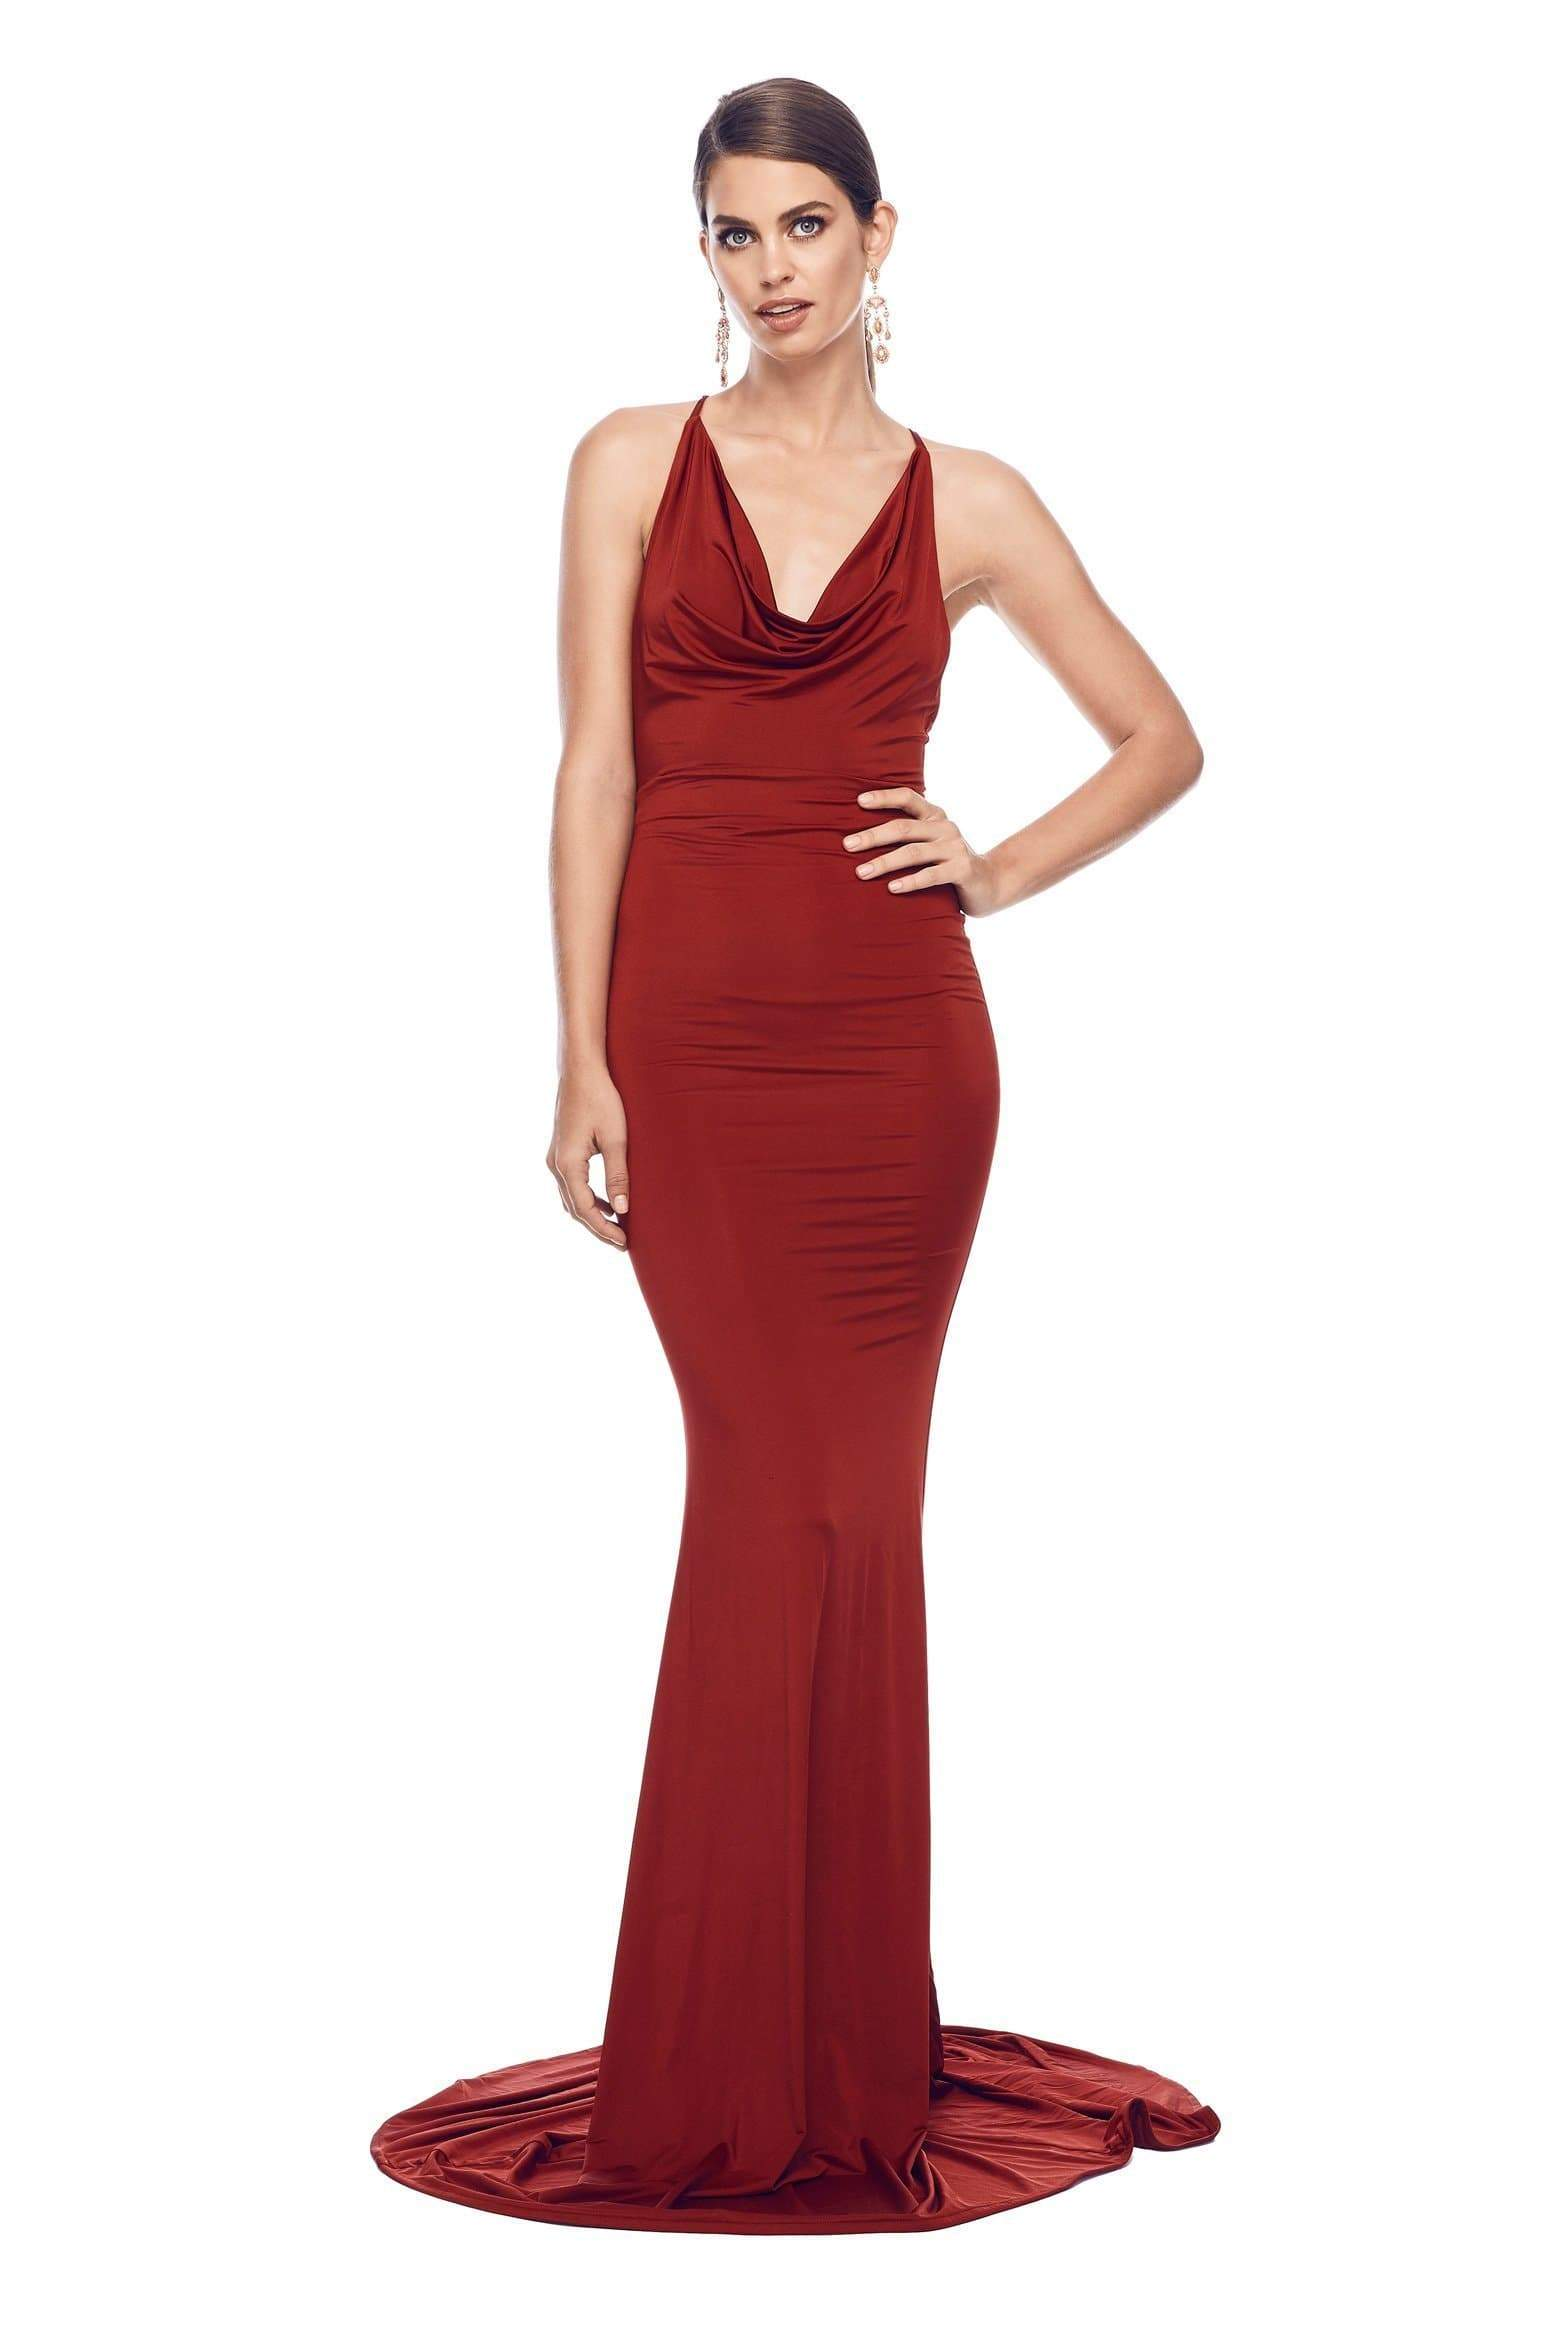 Antonia - Wine Red Jersey Gown with Cowl Neck and Lace Up Straps